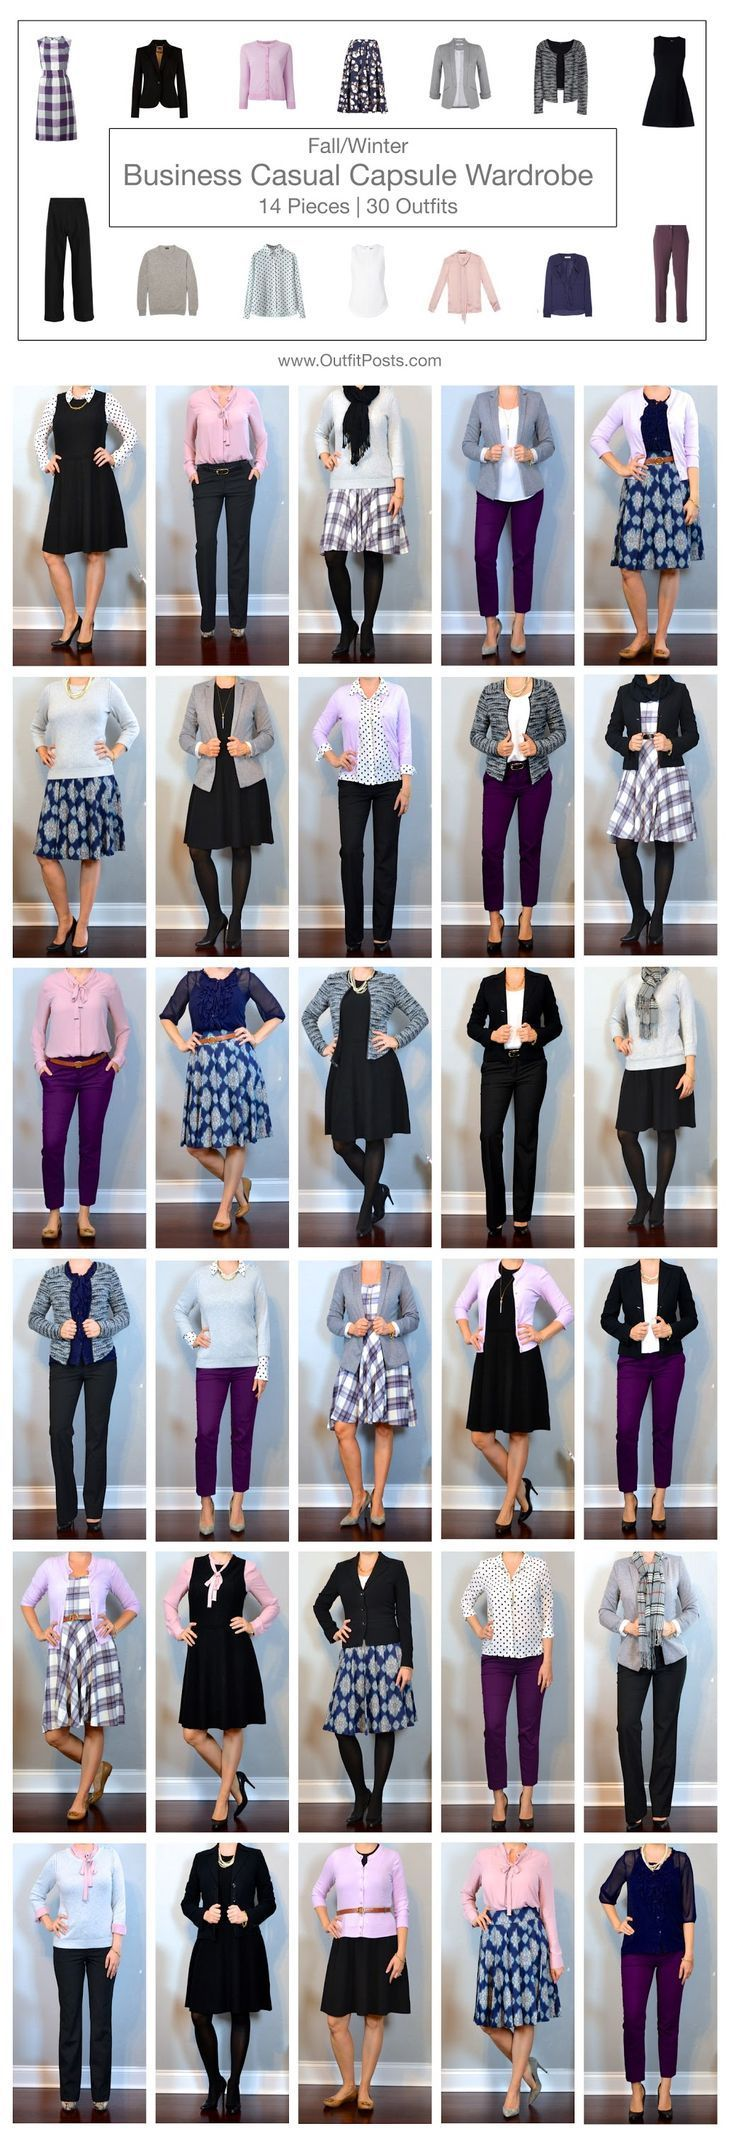 outfit post: fall/winter business casual capsule wardrobe - 14 pieces | 30 outfits | Outfit Posts #businesscasualoutfits